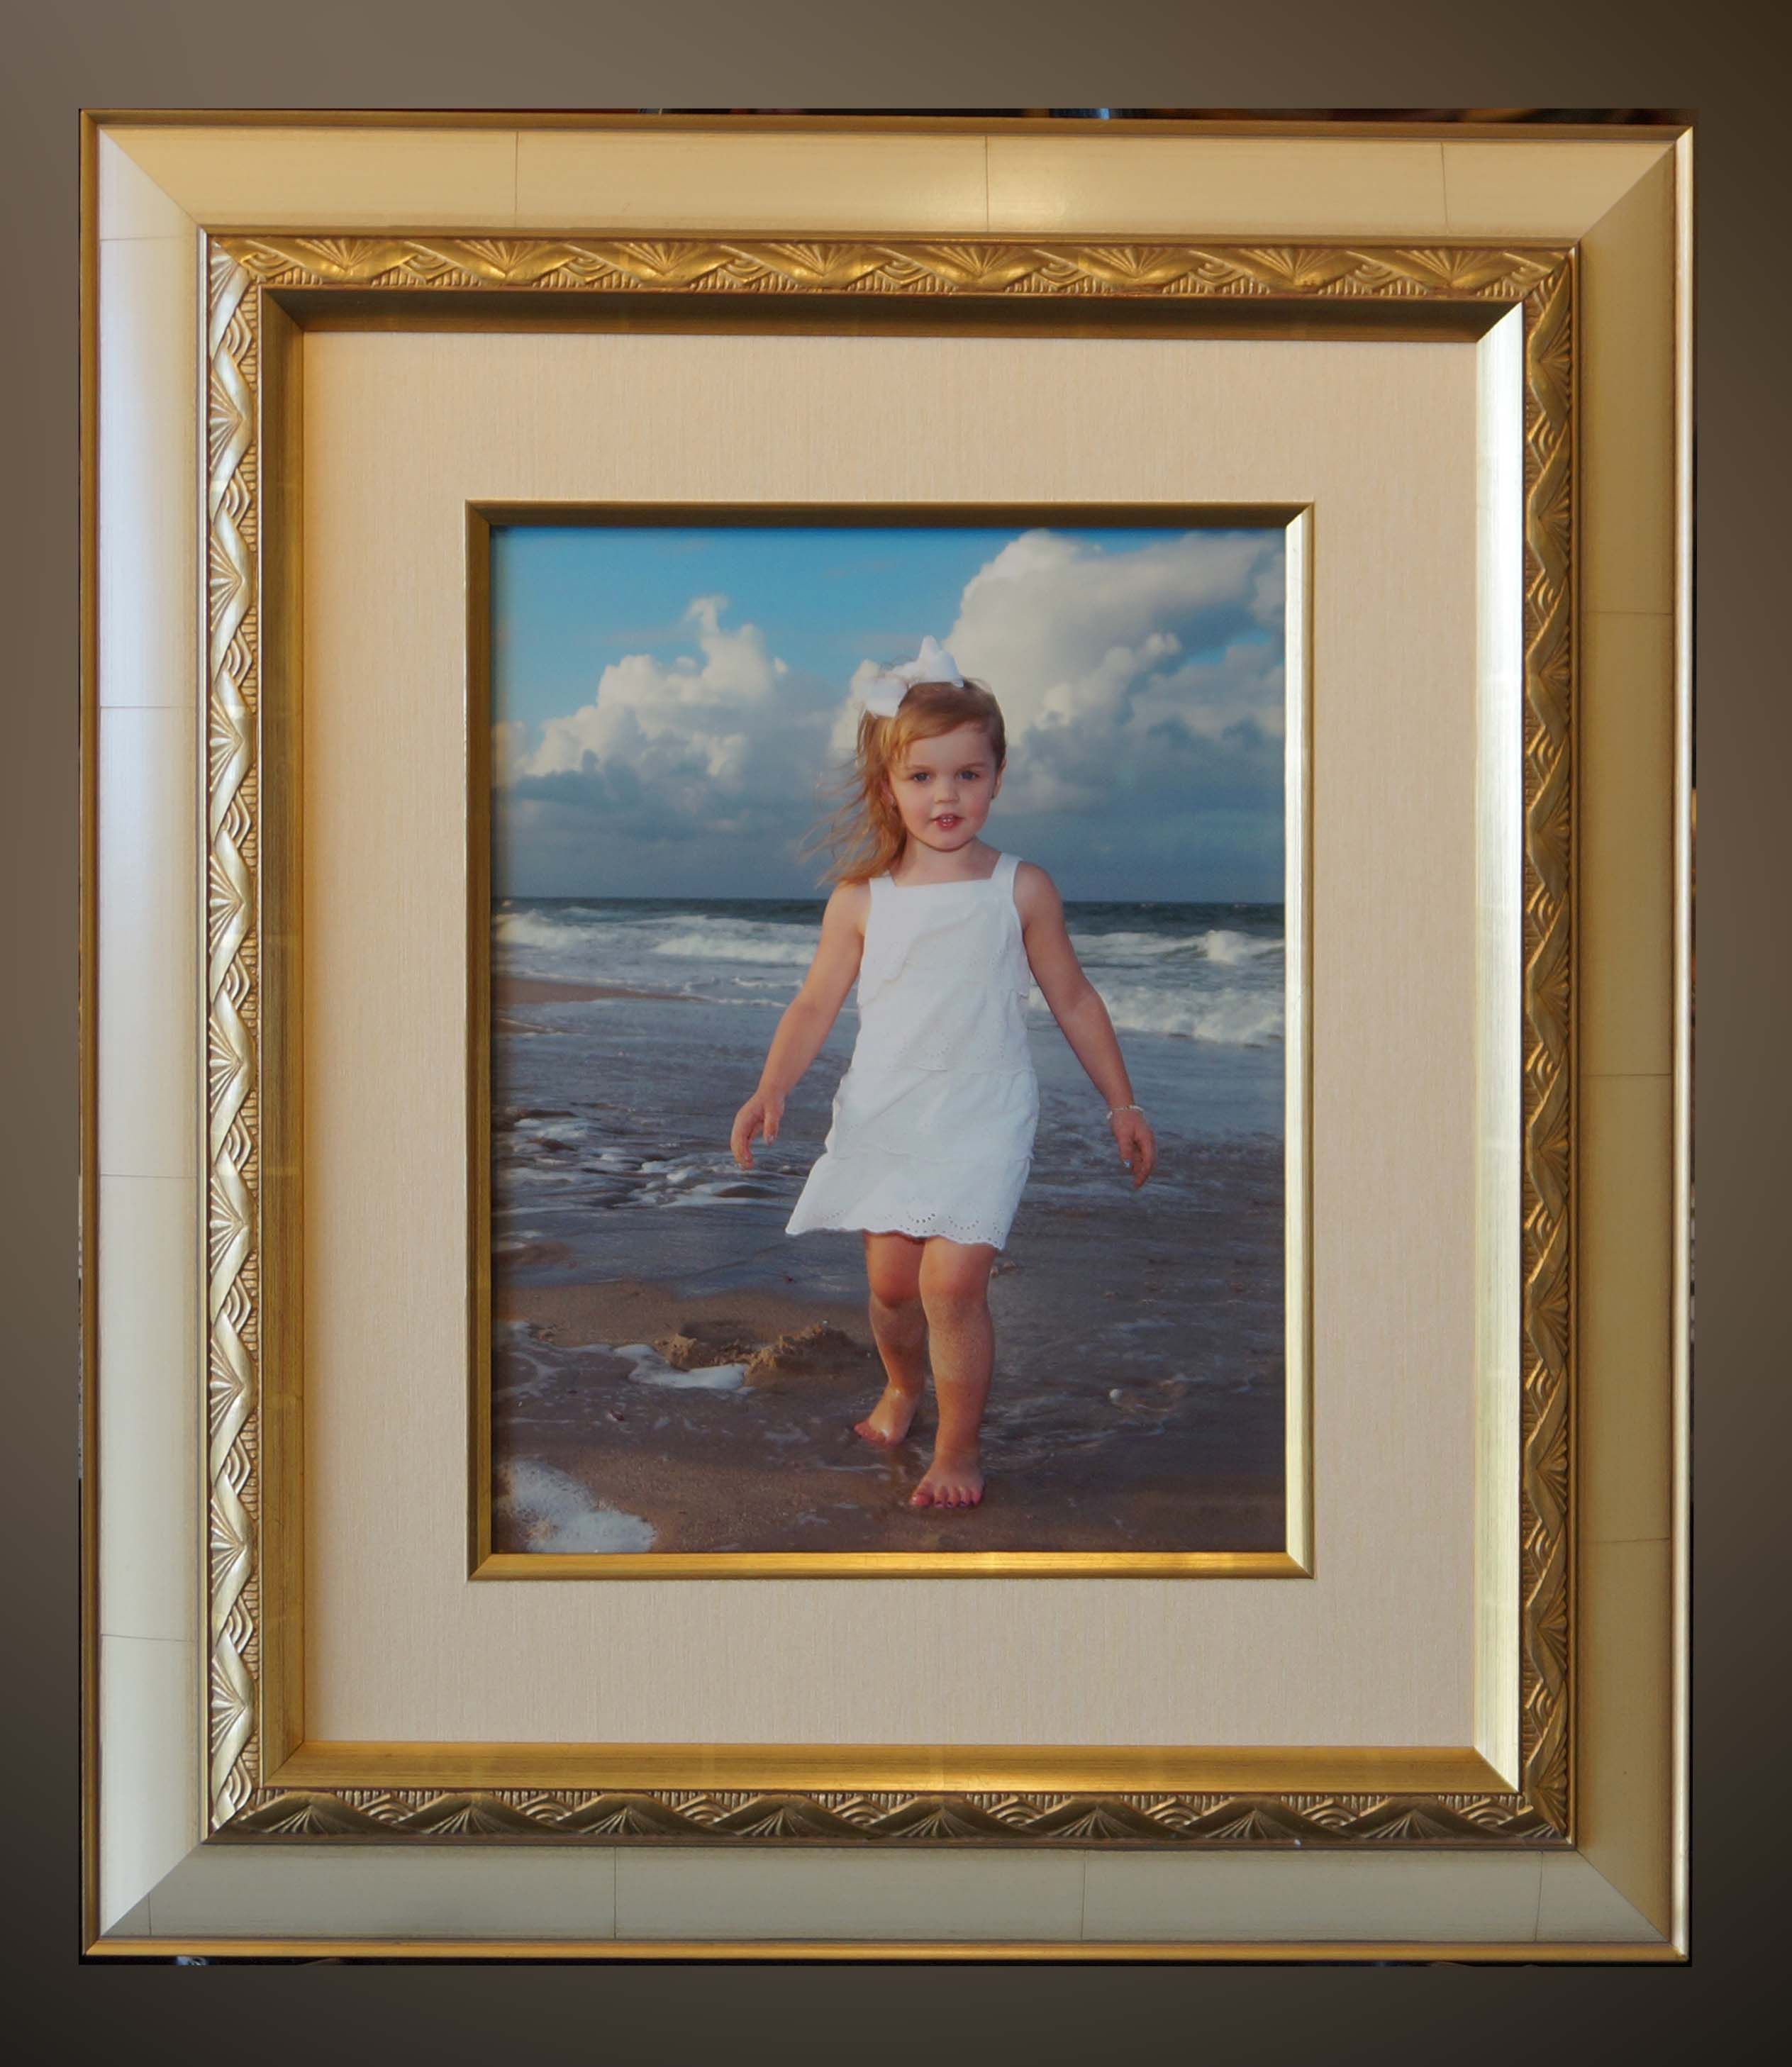 A Beautiful Gold Accented Frame With Art Deco Details And Matching